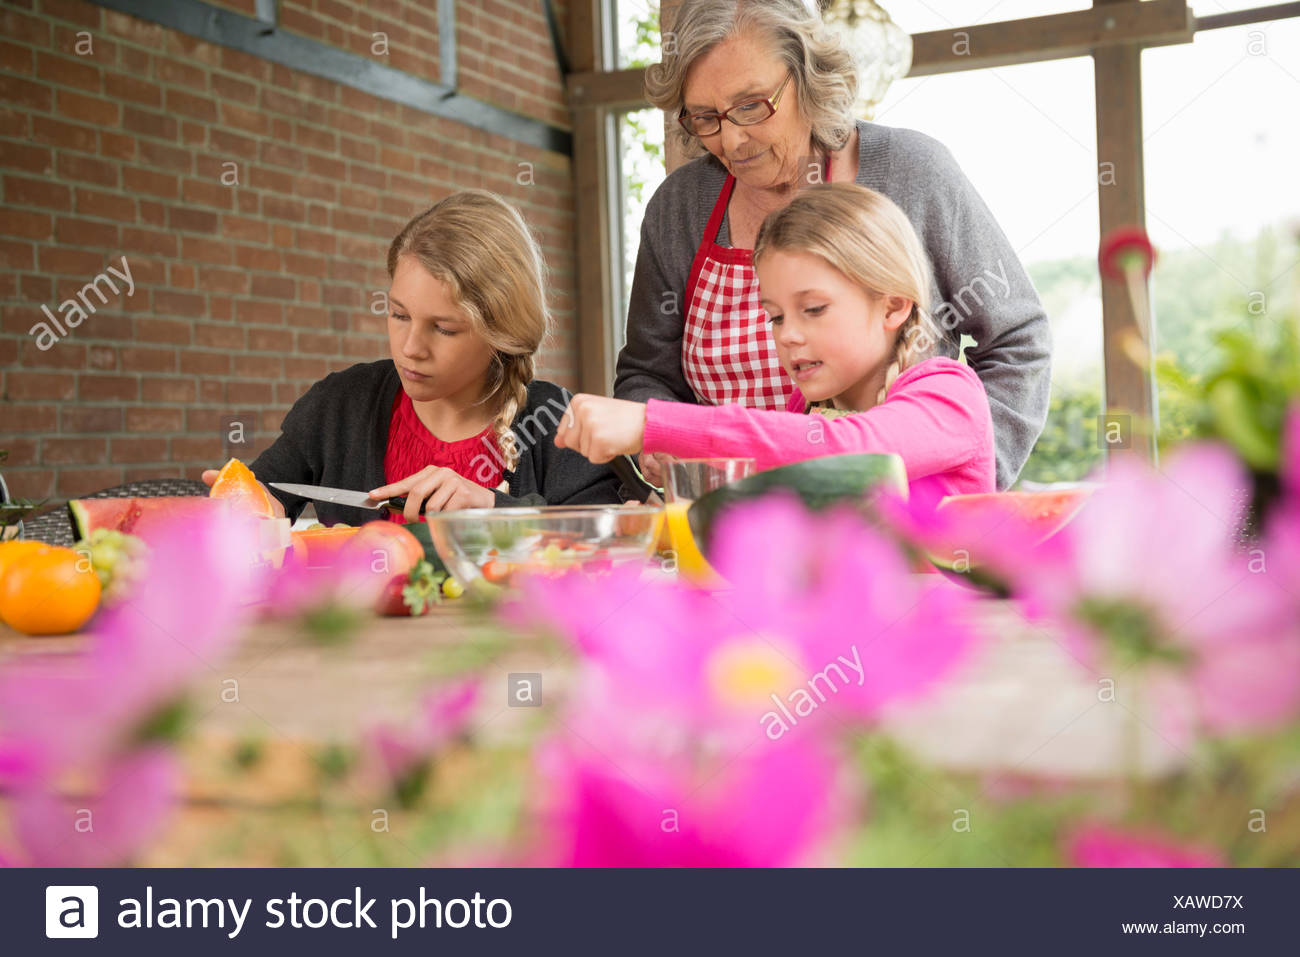 Two sisters and grandmother at kitchen table learning to slice fresh fruit - Stock Image